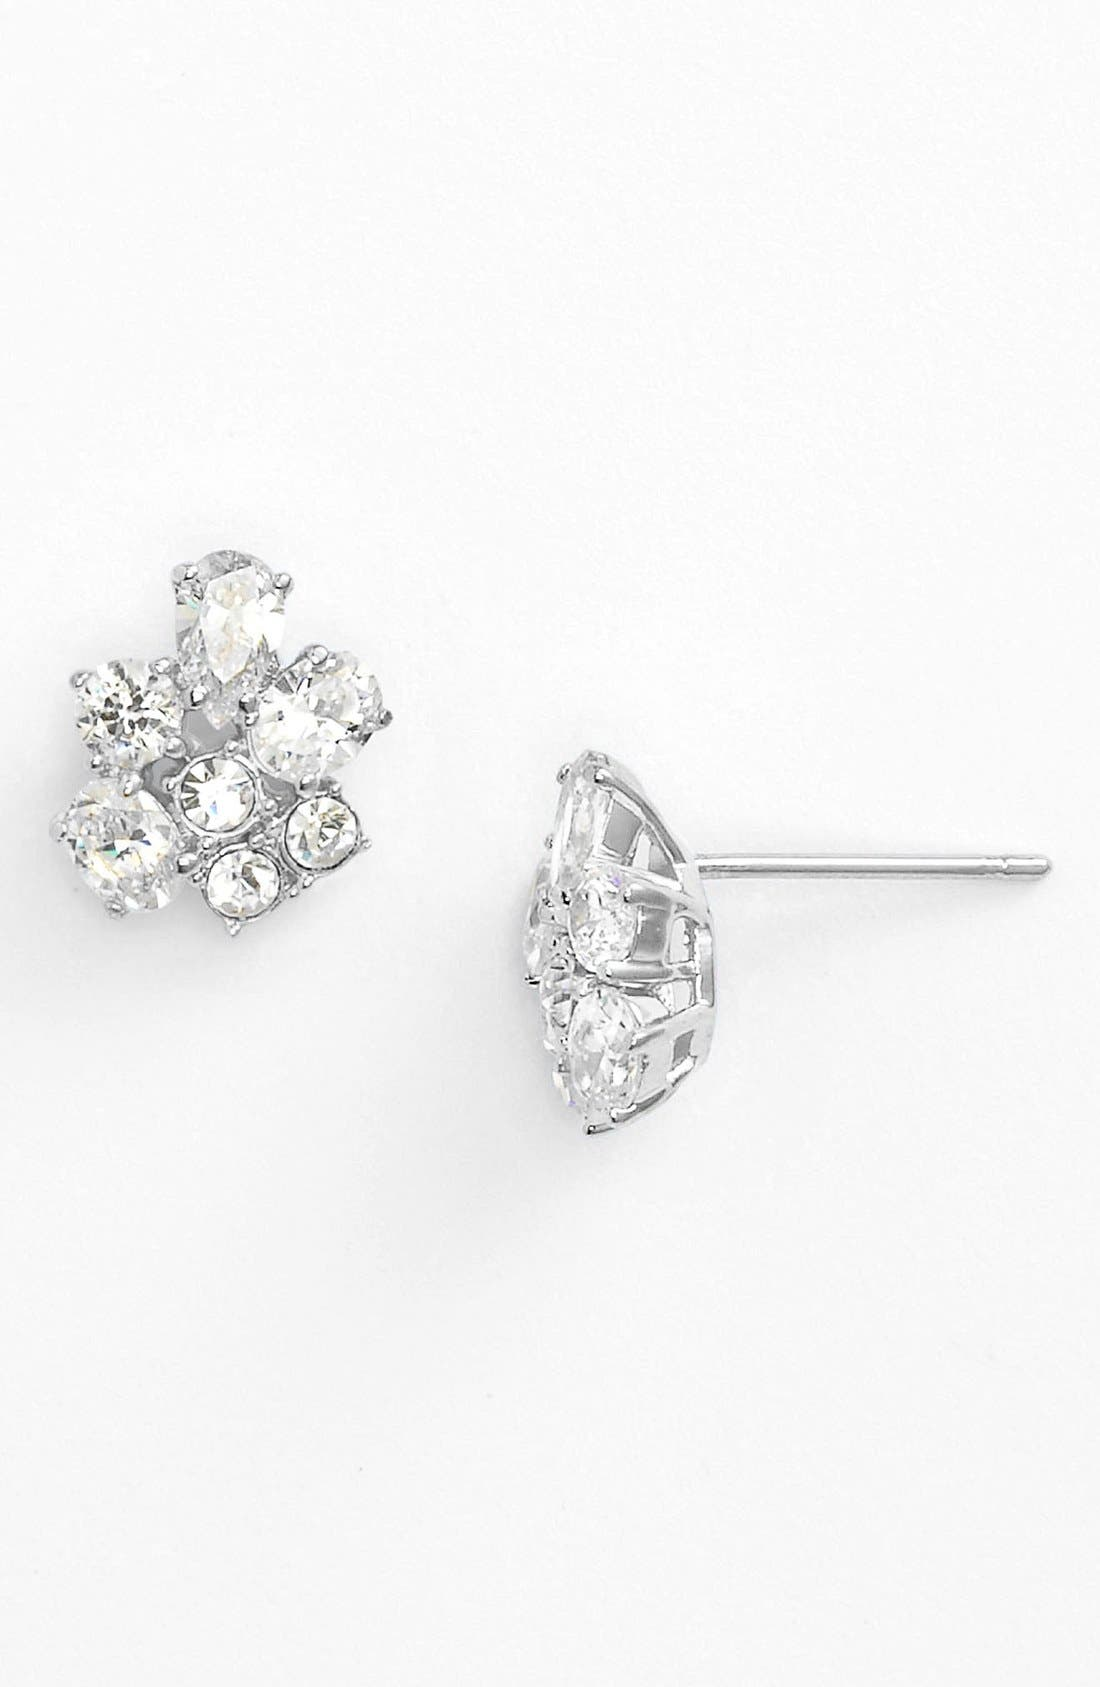 Alternate Image 1 Selected - Nadri Cubic Zirconia Cluster Stud Earrings (Nordstrom Exclusive)